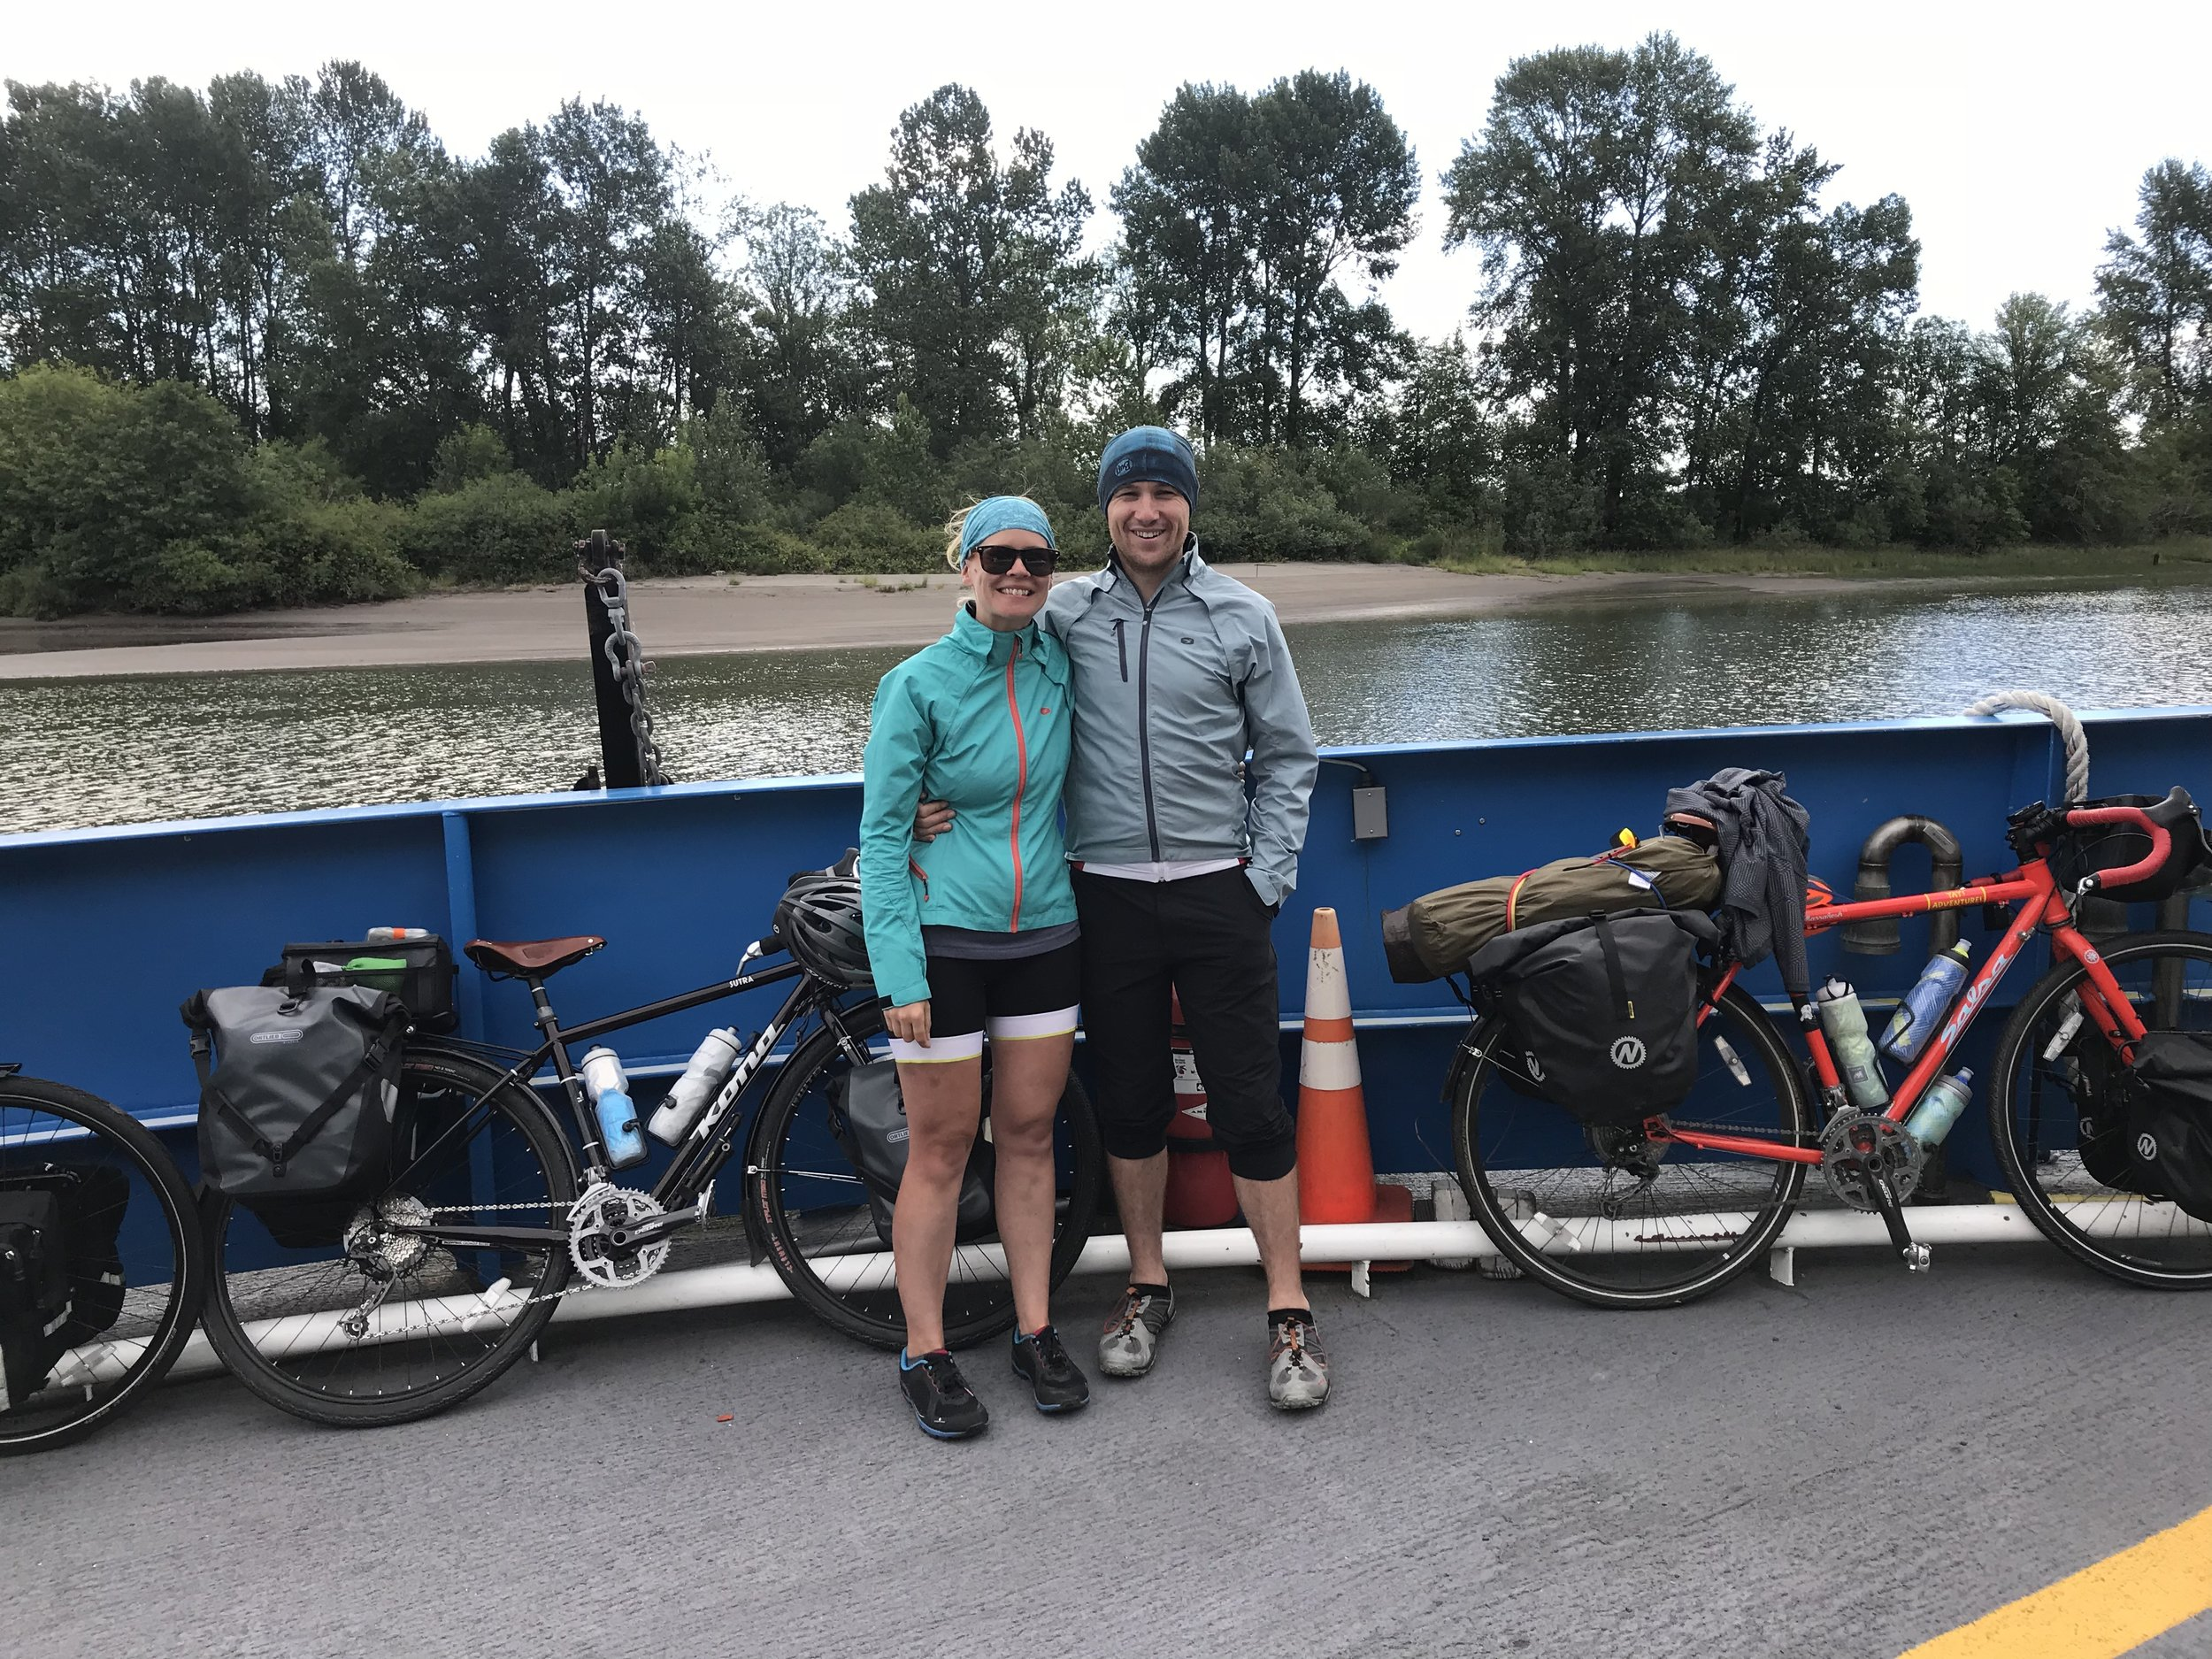 Riding the ferry across the Columbia River.